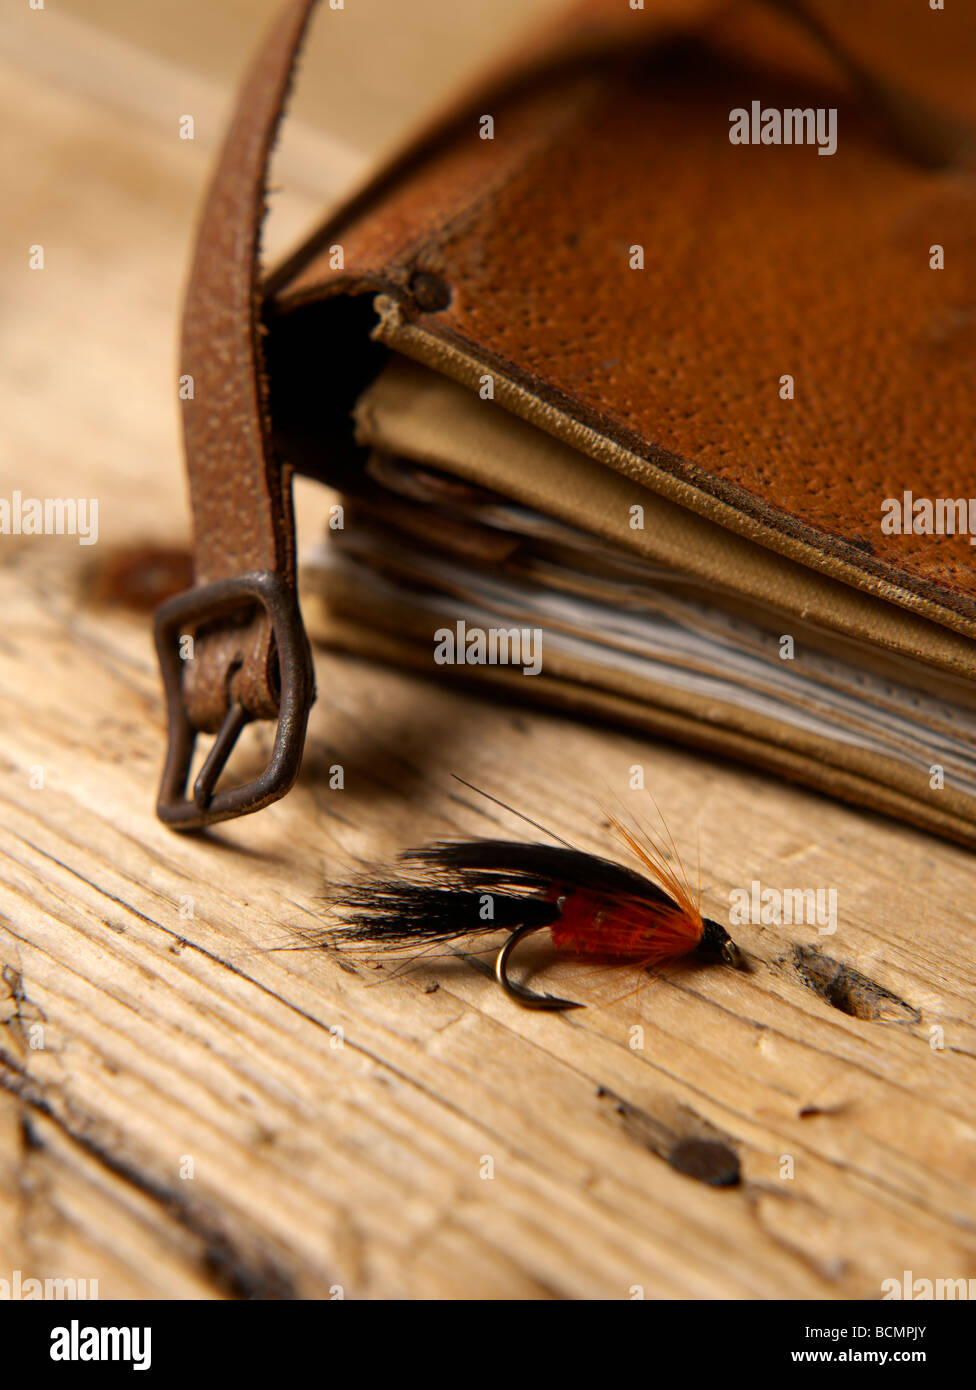 Artificial fly - fly fishing - Stock Image